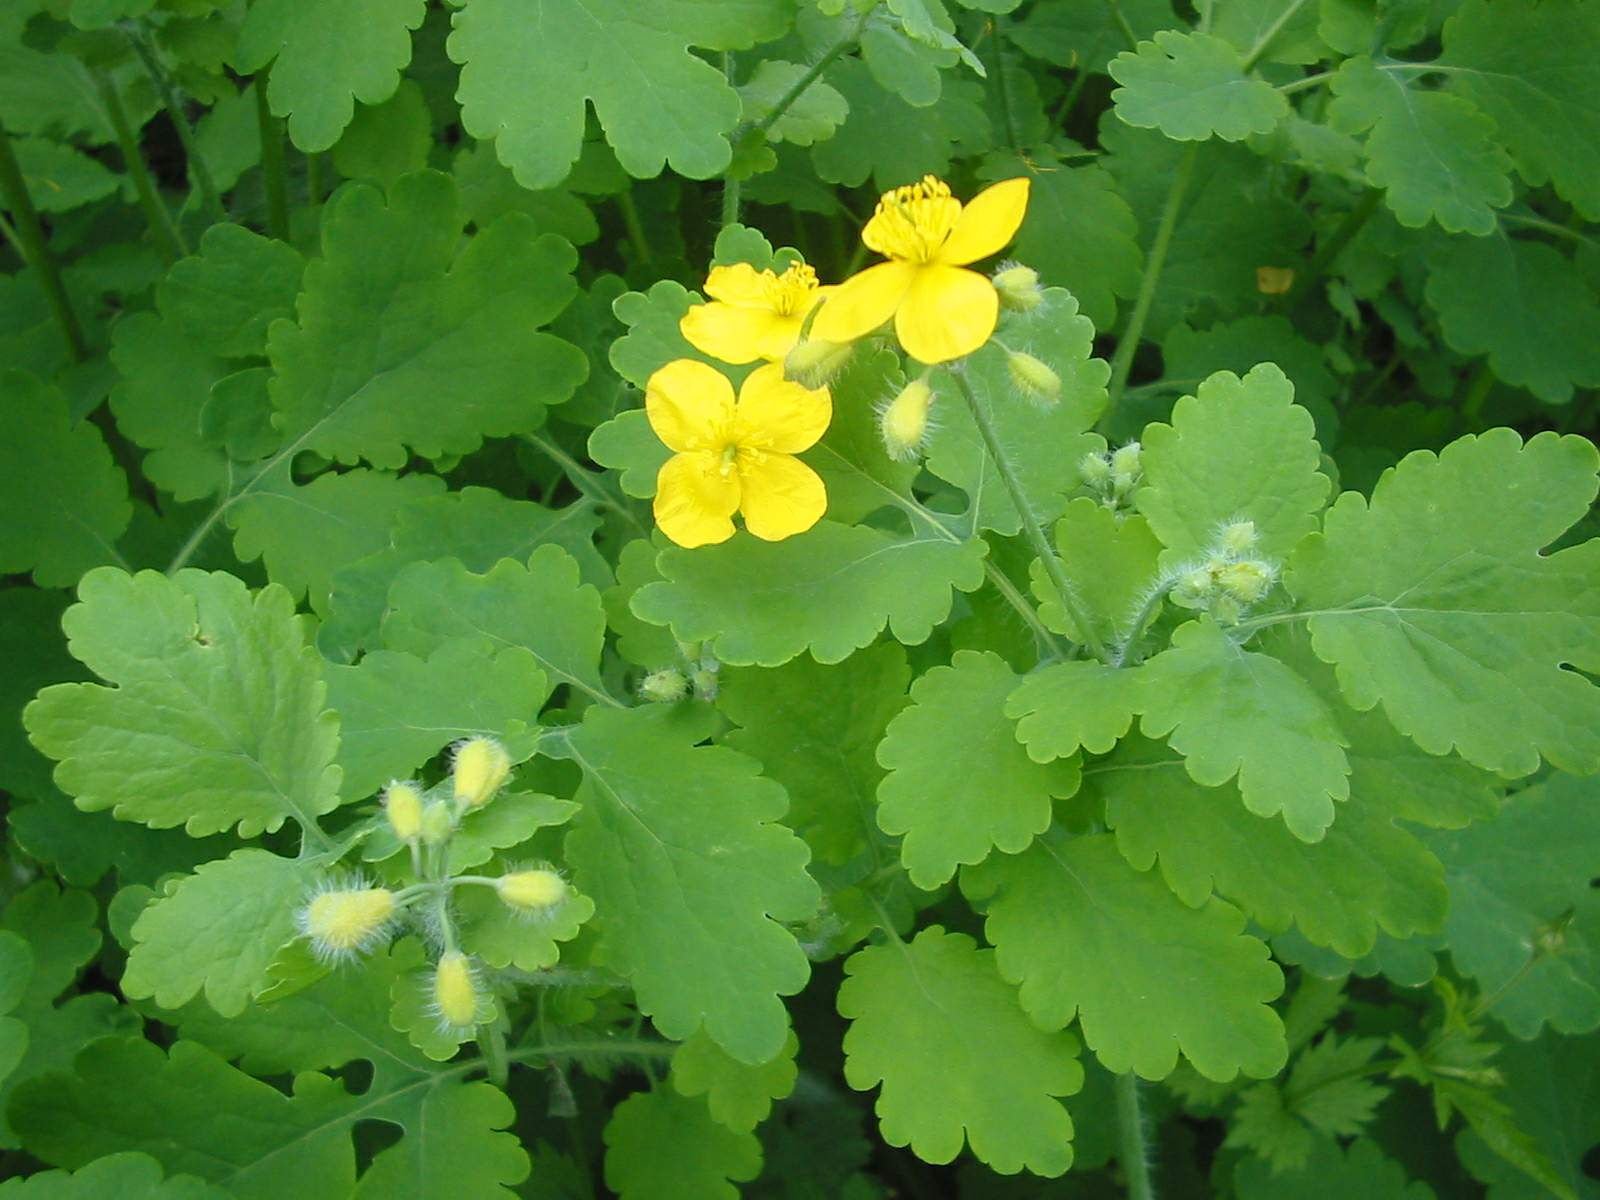 File:Chelidonium majus bgiu.jpg - Wikipedia, the free encyclopedia